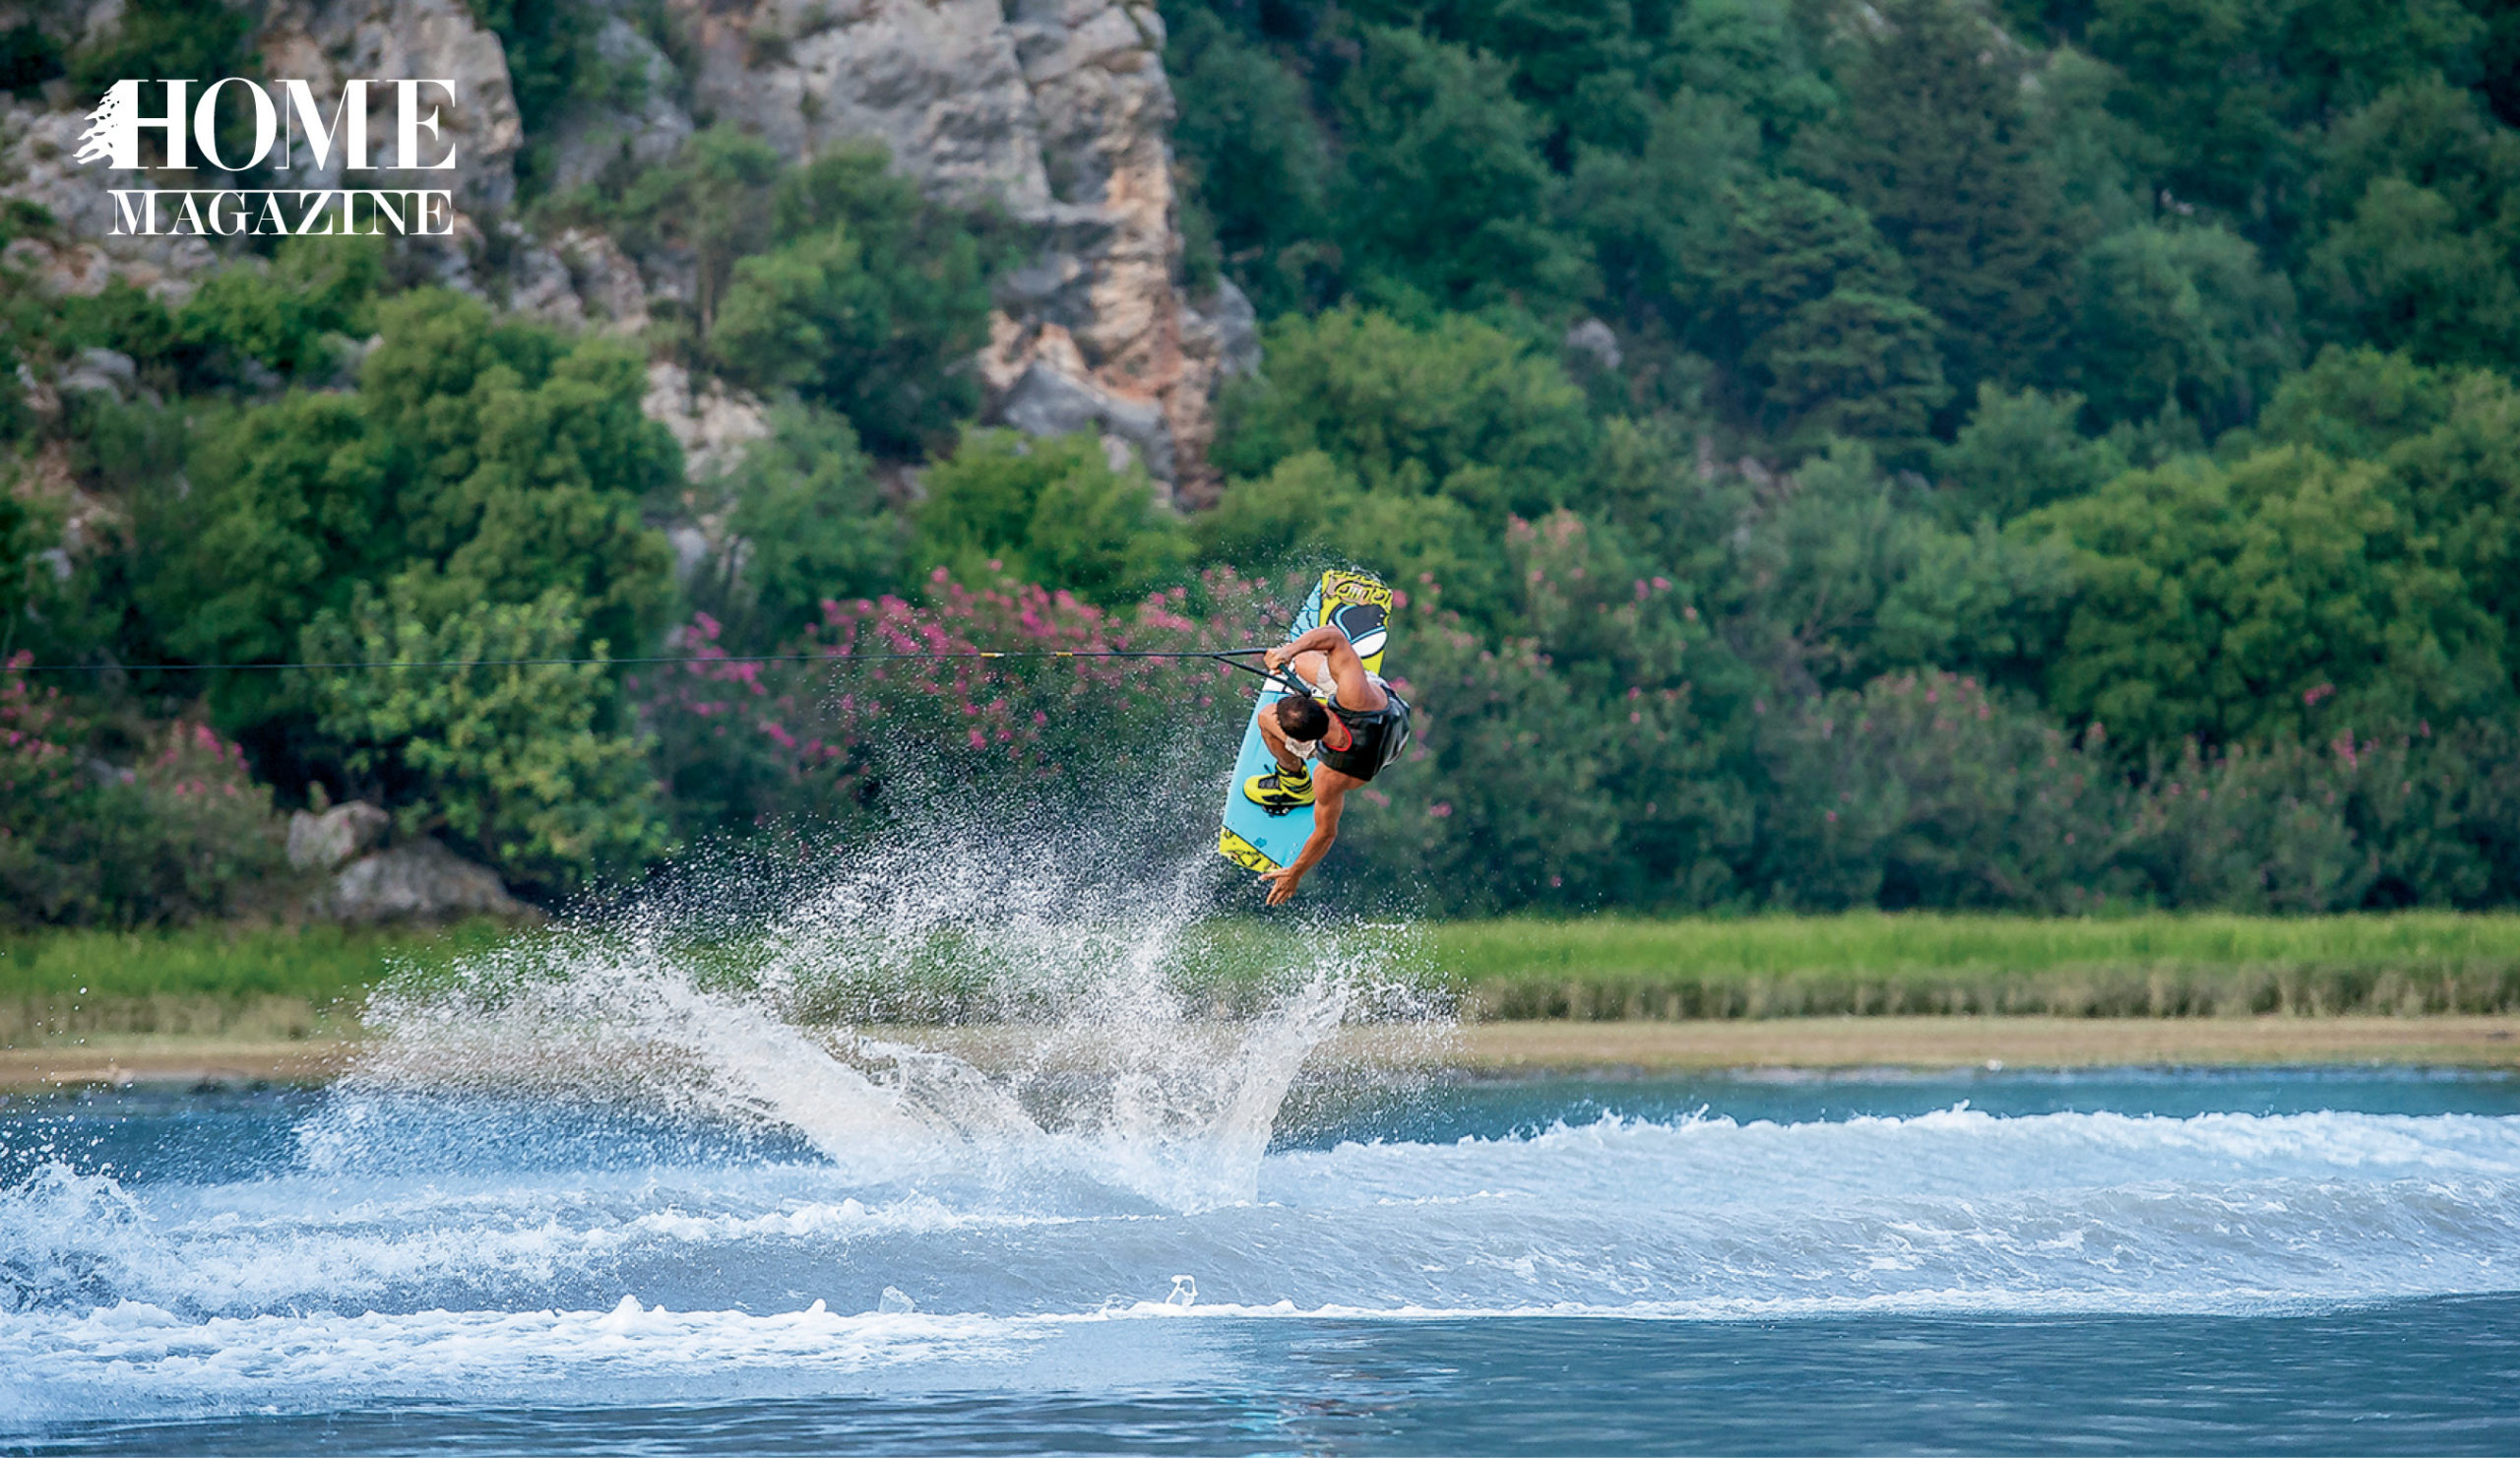 Man water surfing and flipping in the air